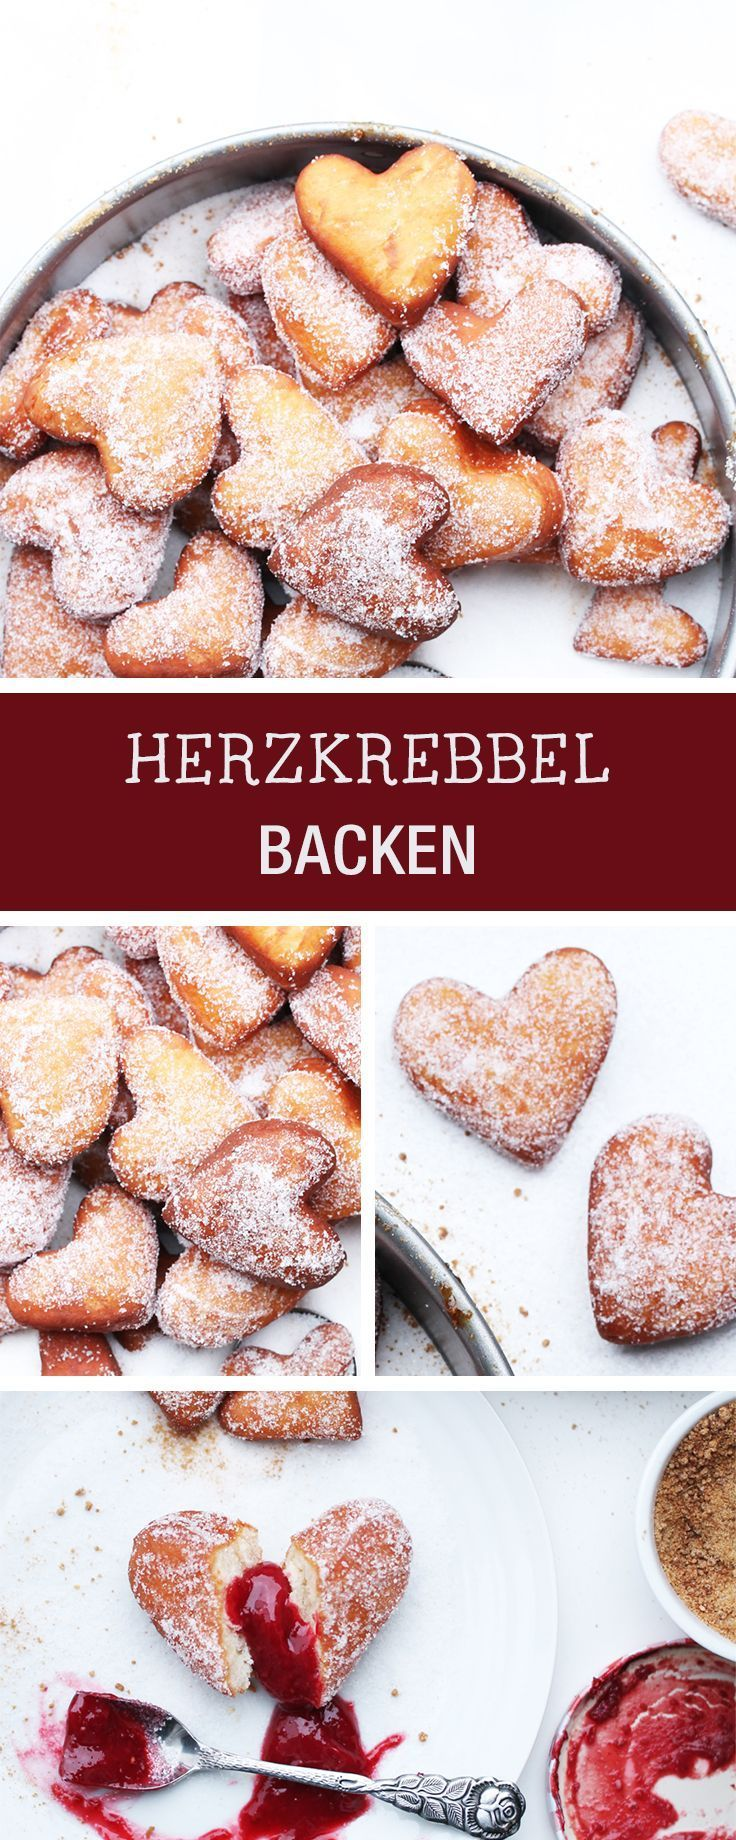 s es rezept f r den valentinstag krebbel backen in herzform recipe for fried pastries in. Black Bedroom Furniture Sets. Home Design Ideas